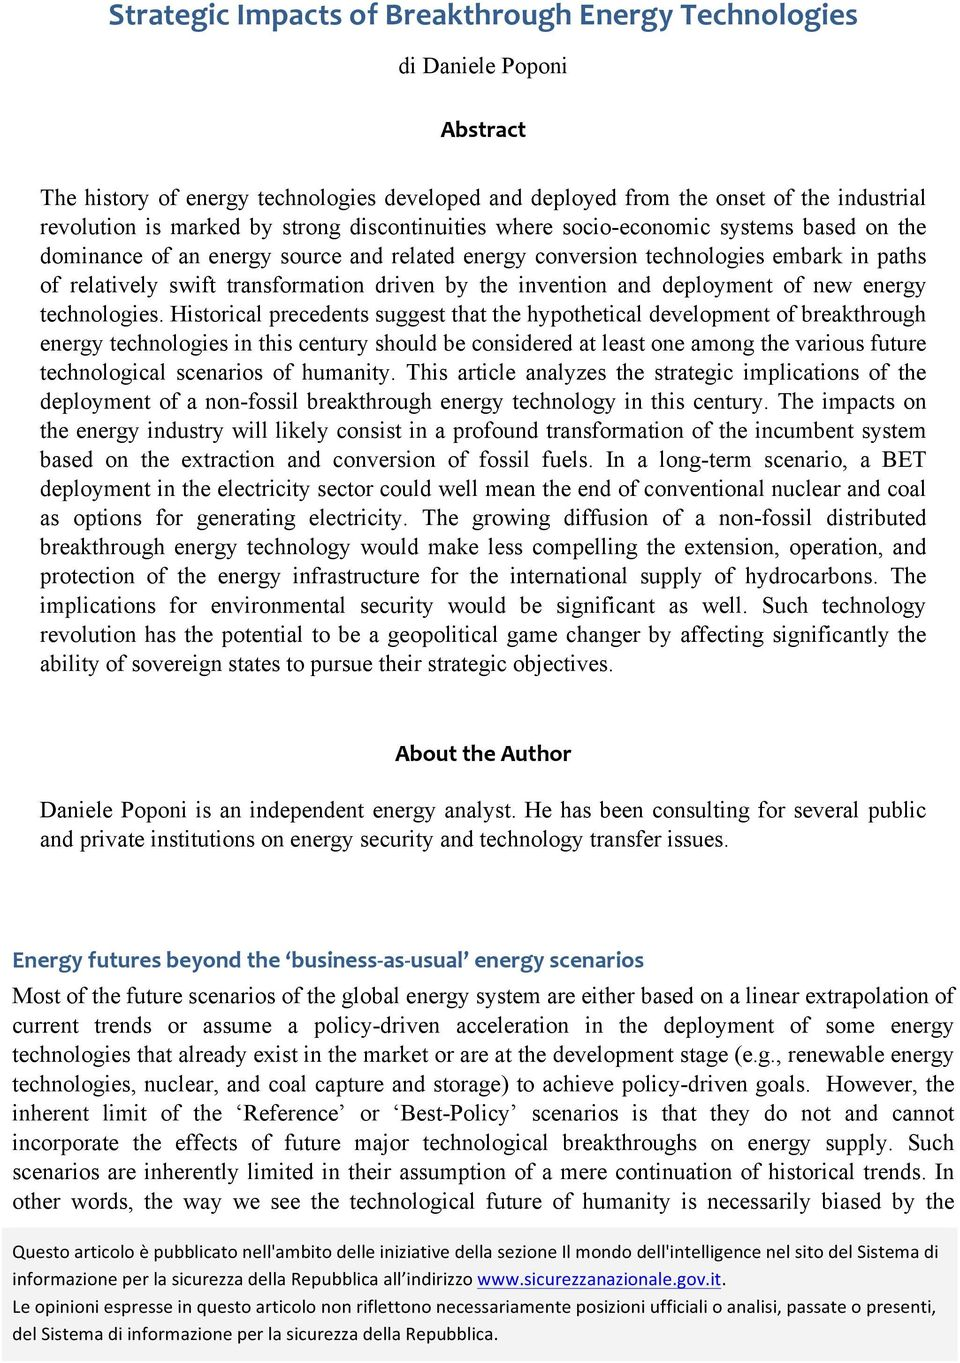 Historical precedents suggest that the hypothetical development of breakthrough energy technologies in this century should be considered at least one among the various future technological scenarios